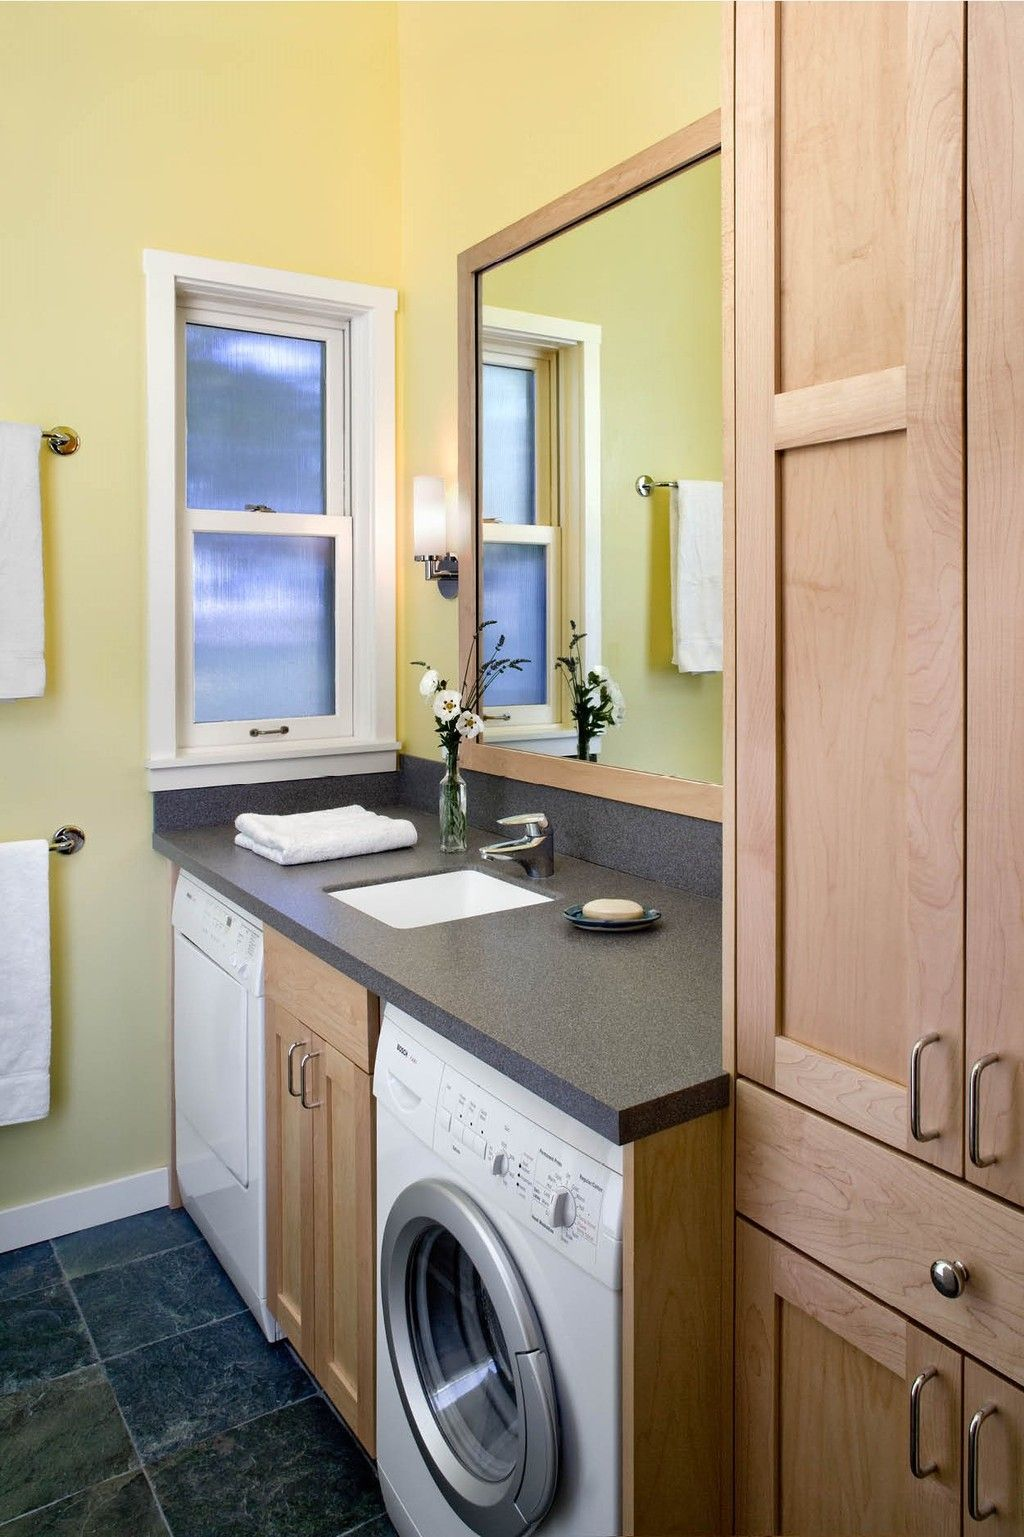 Washer Dryer Under The Bathroom Counter No Ty Little Vanity And A Great Use Of Often Wasted E